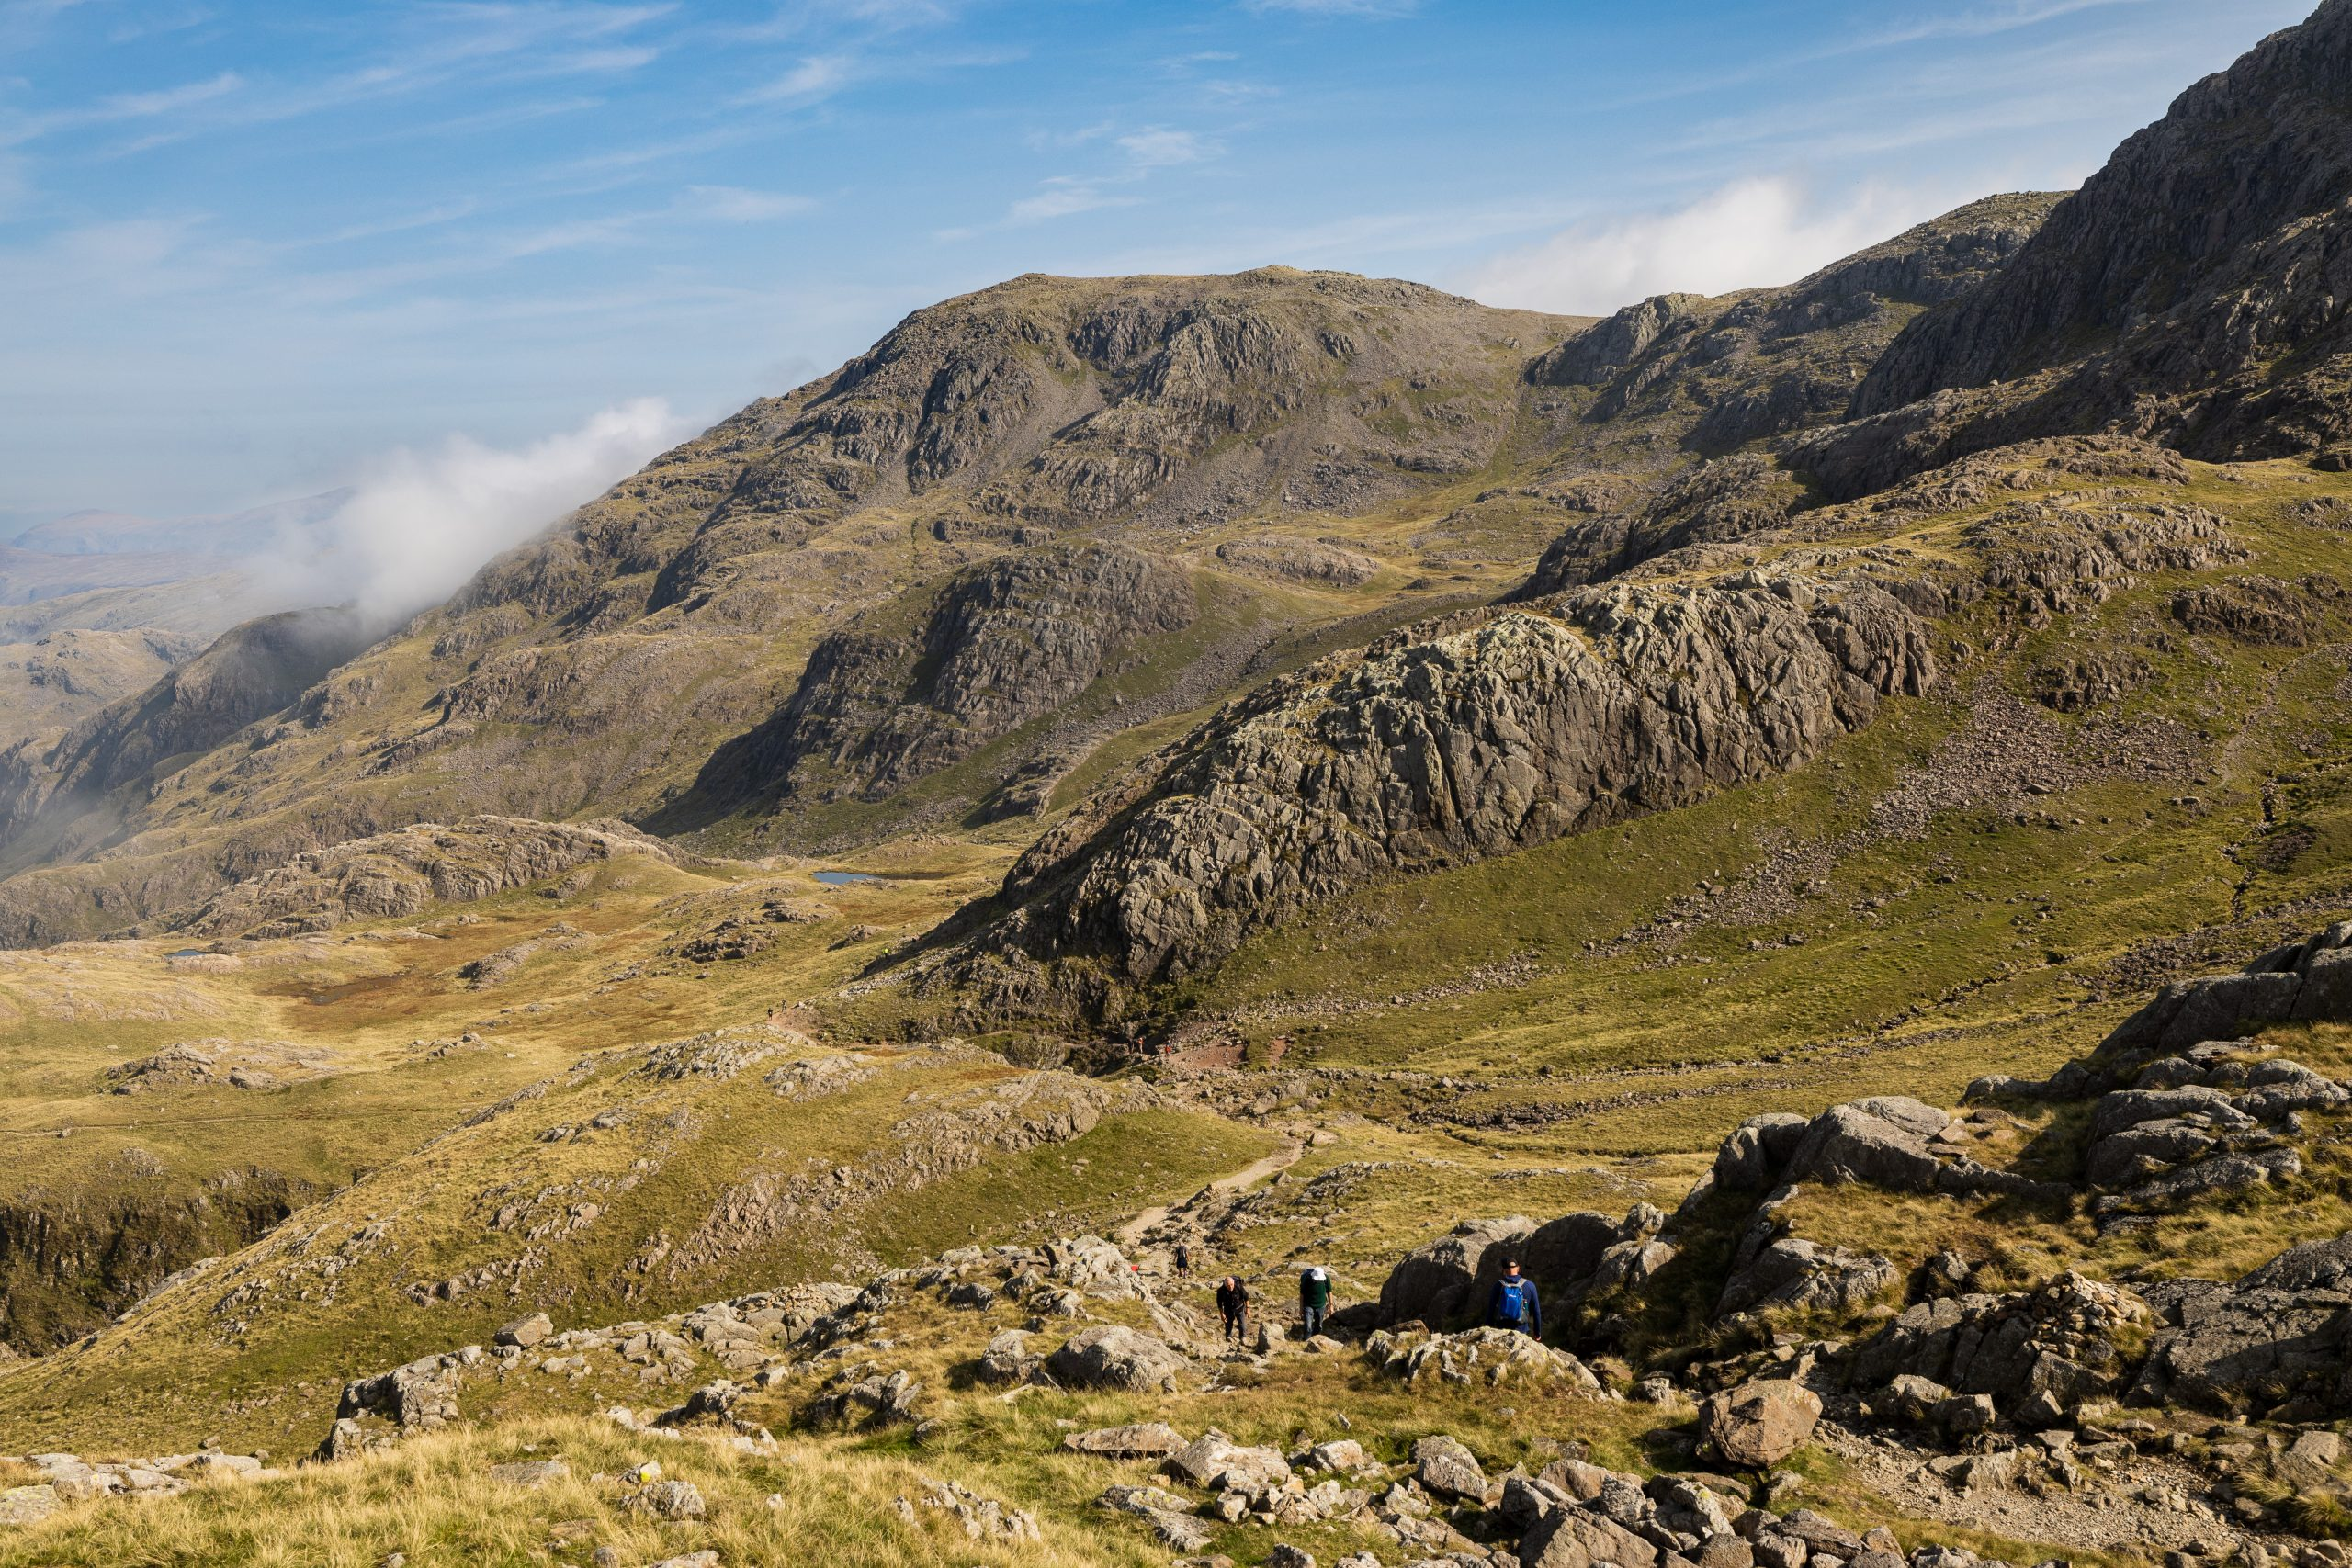 Great End seen from the start of the Corridor Route below Scafell Pike